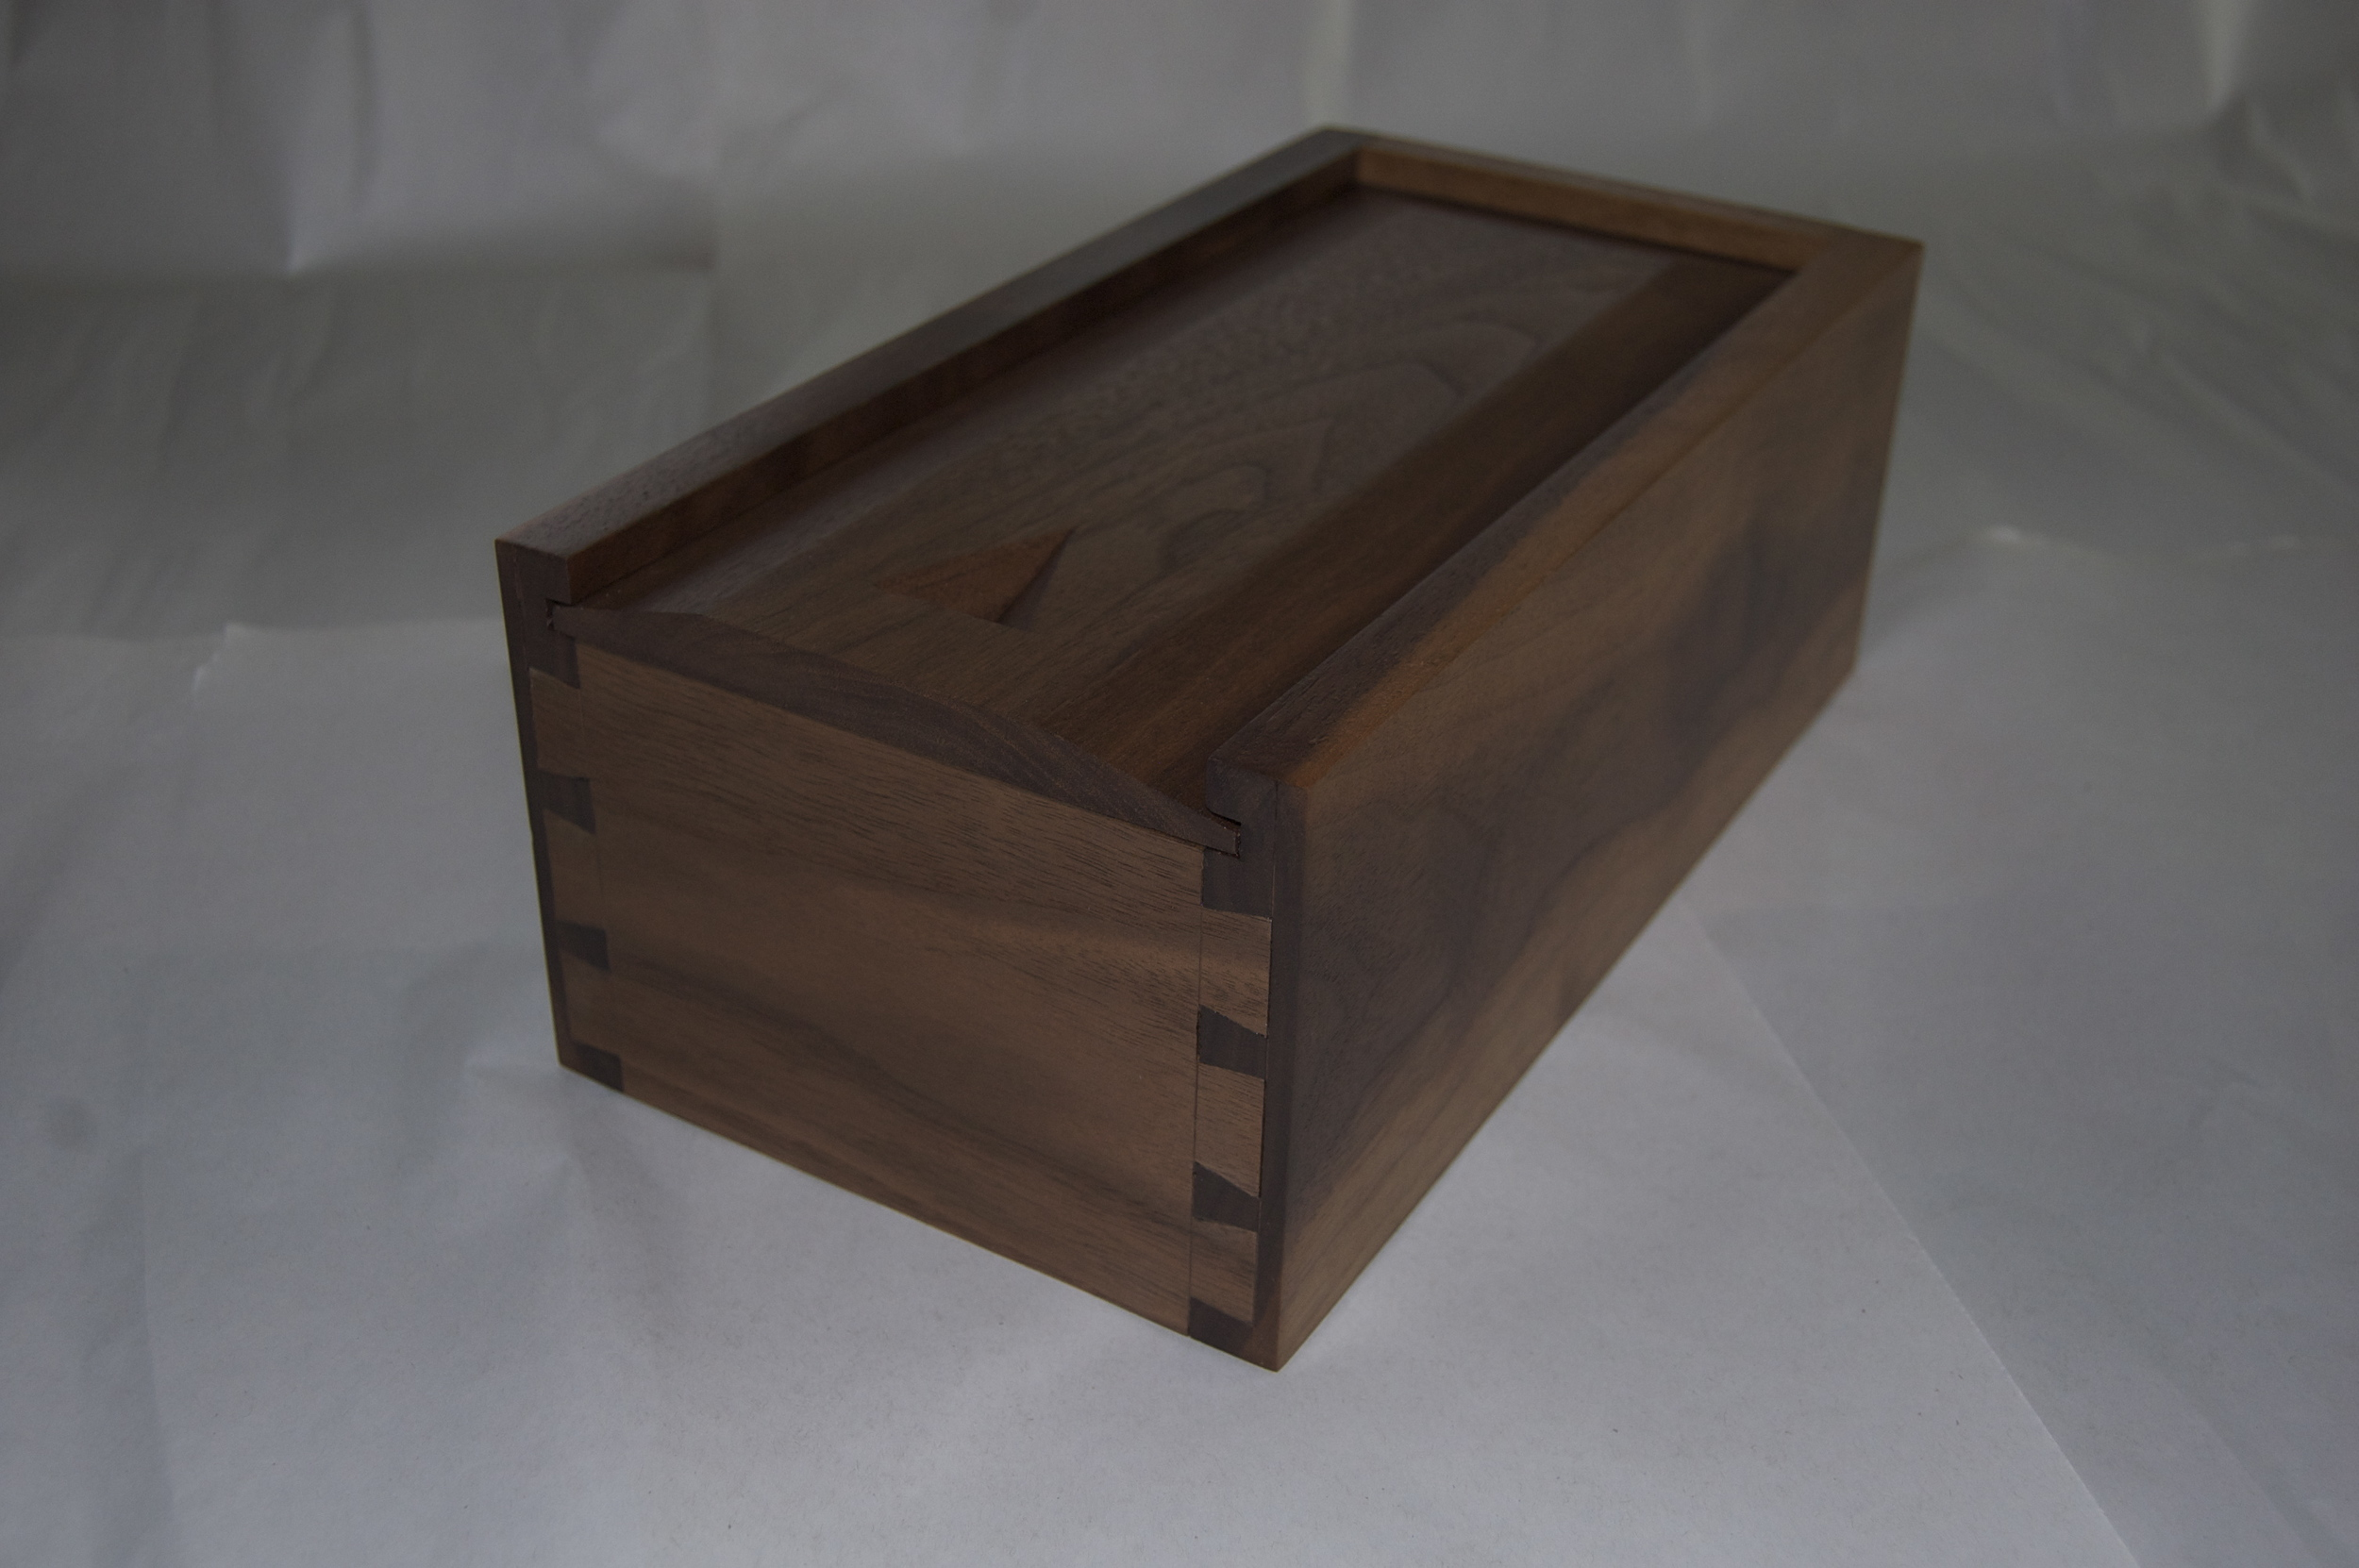 """Material used for this box is walnut. Hand cut dove tails are used to join ends and sides of the box. The raised panel bottom sits in a grove, which allows it to move with changes in the season. The top is also a raised panel on three sides and slides in a grove. The top also has a carved finger pull.A satin oil and urethane finish was applied to show the grain of the wood while providing some protection from everyday use. This box is for sale for $40.00. Dimensions: 12"""" x 6 1/2"""" x 4 1/2"""" (Click on the picture to see how it was put together.)"""